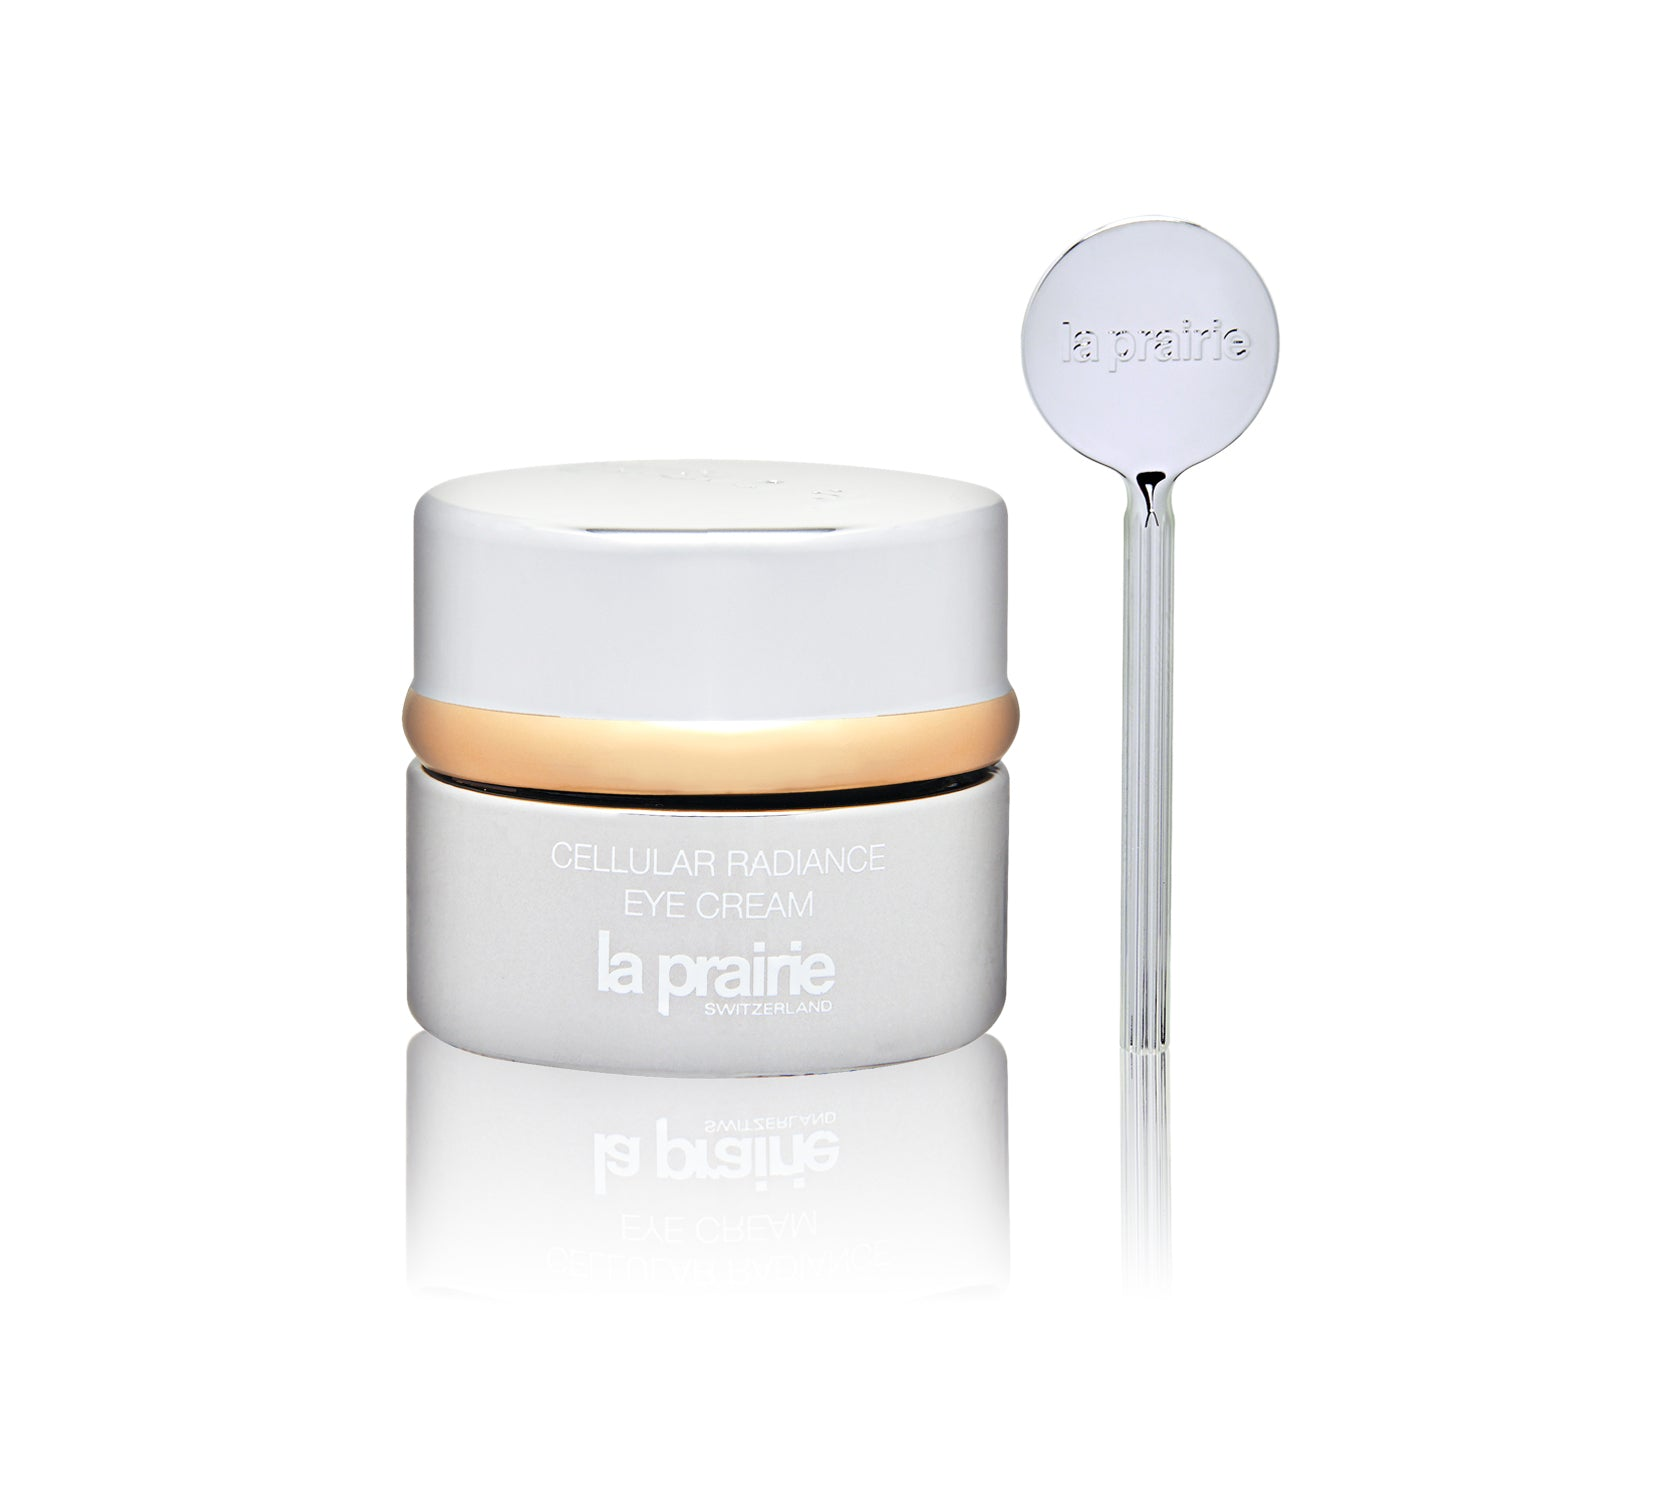 cellular-radiance-eye-cream